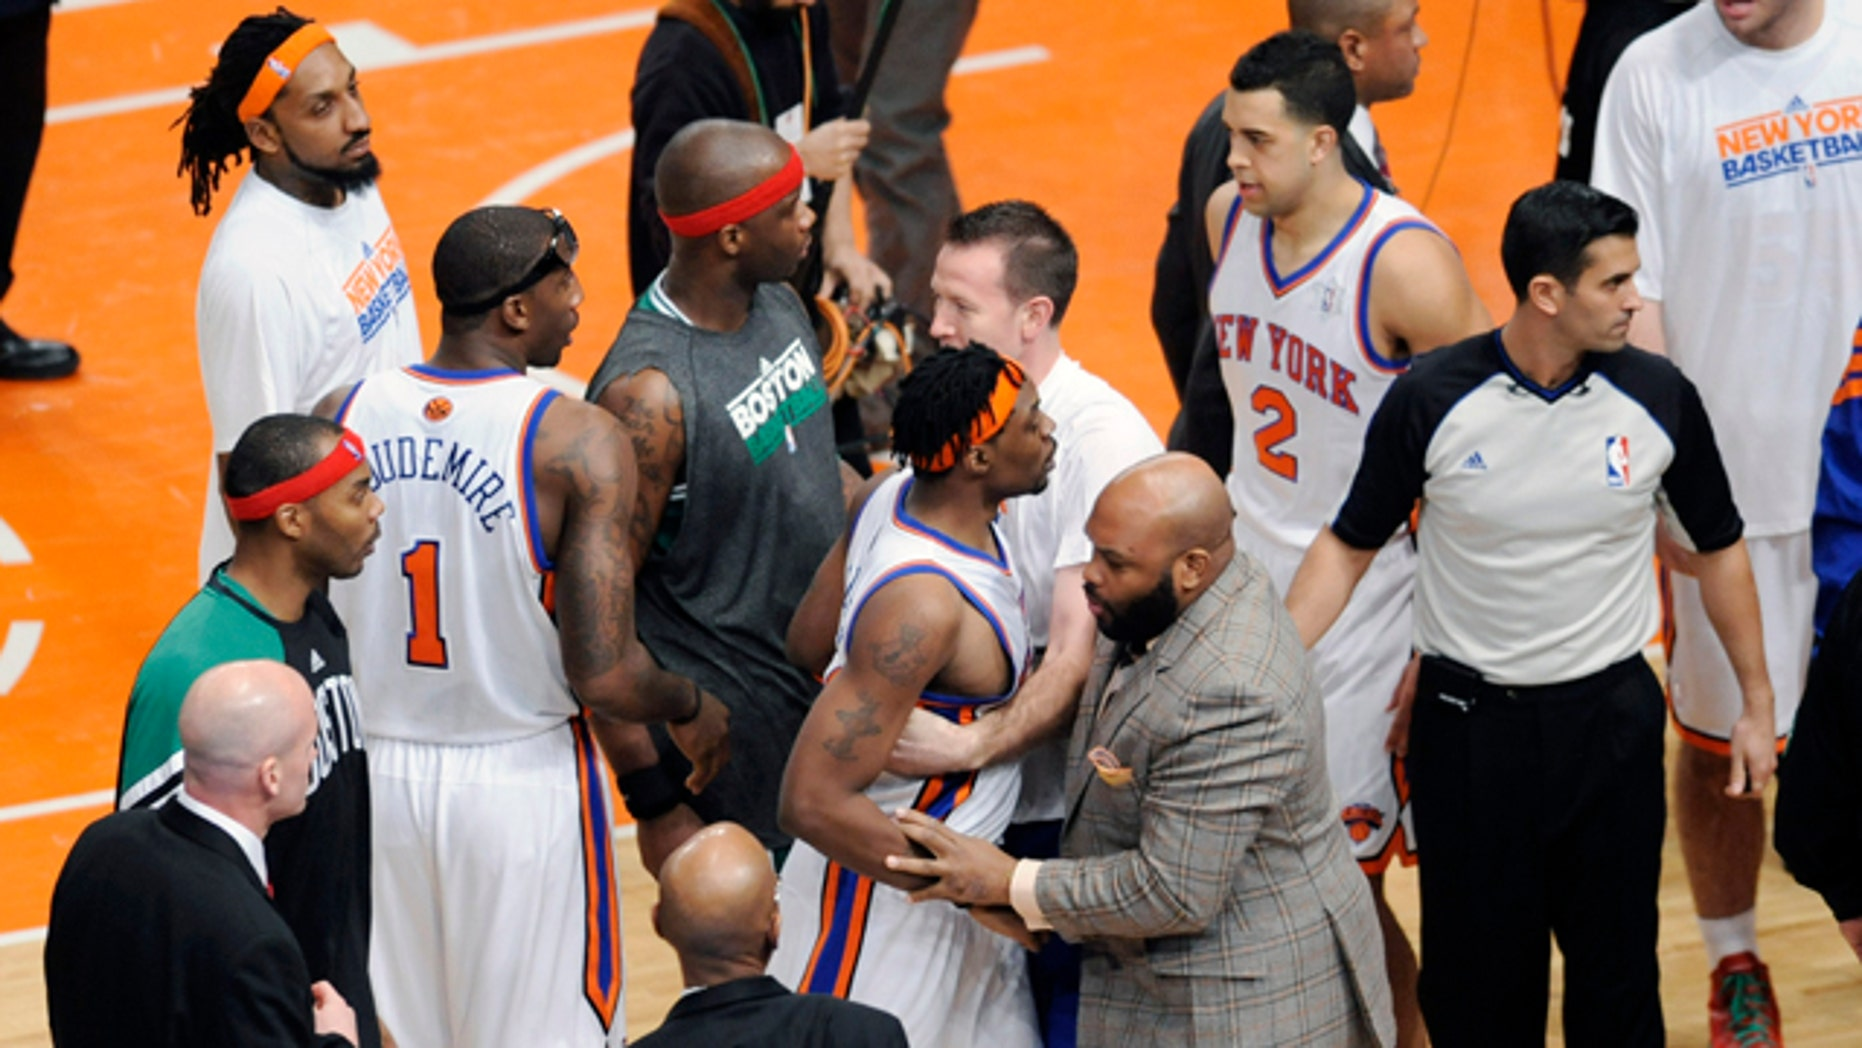 Dec. 25, 2011: New York Knicks' Bill Walker is restrained at the end of the NBA basketball game against the Boston Celtics at Madison Square Garden in New York.